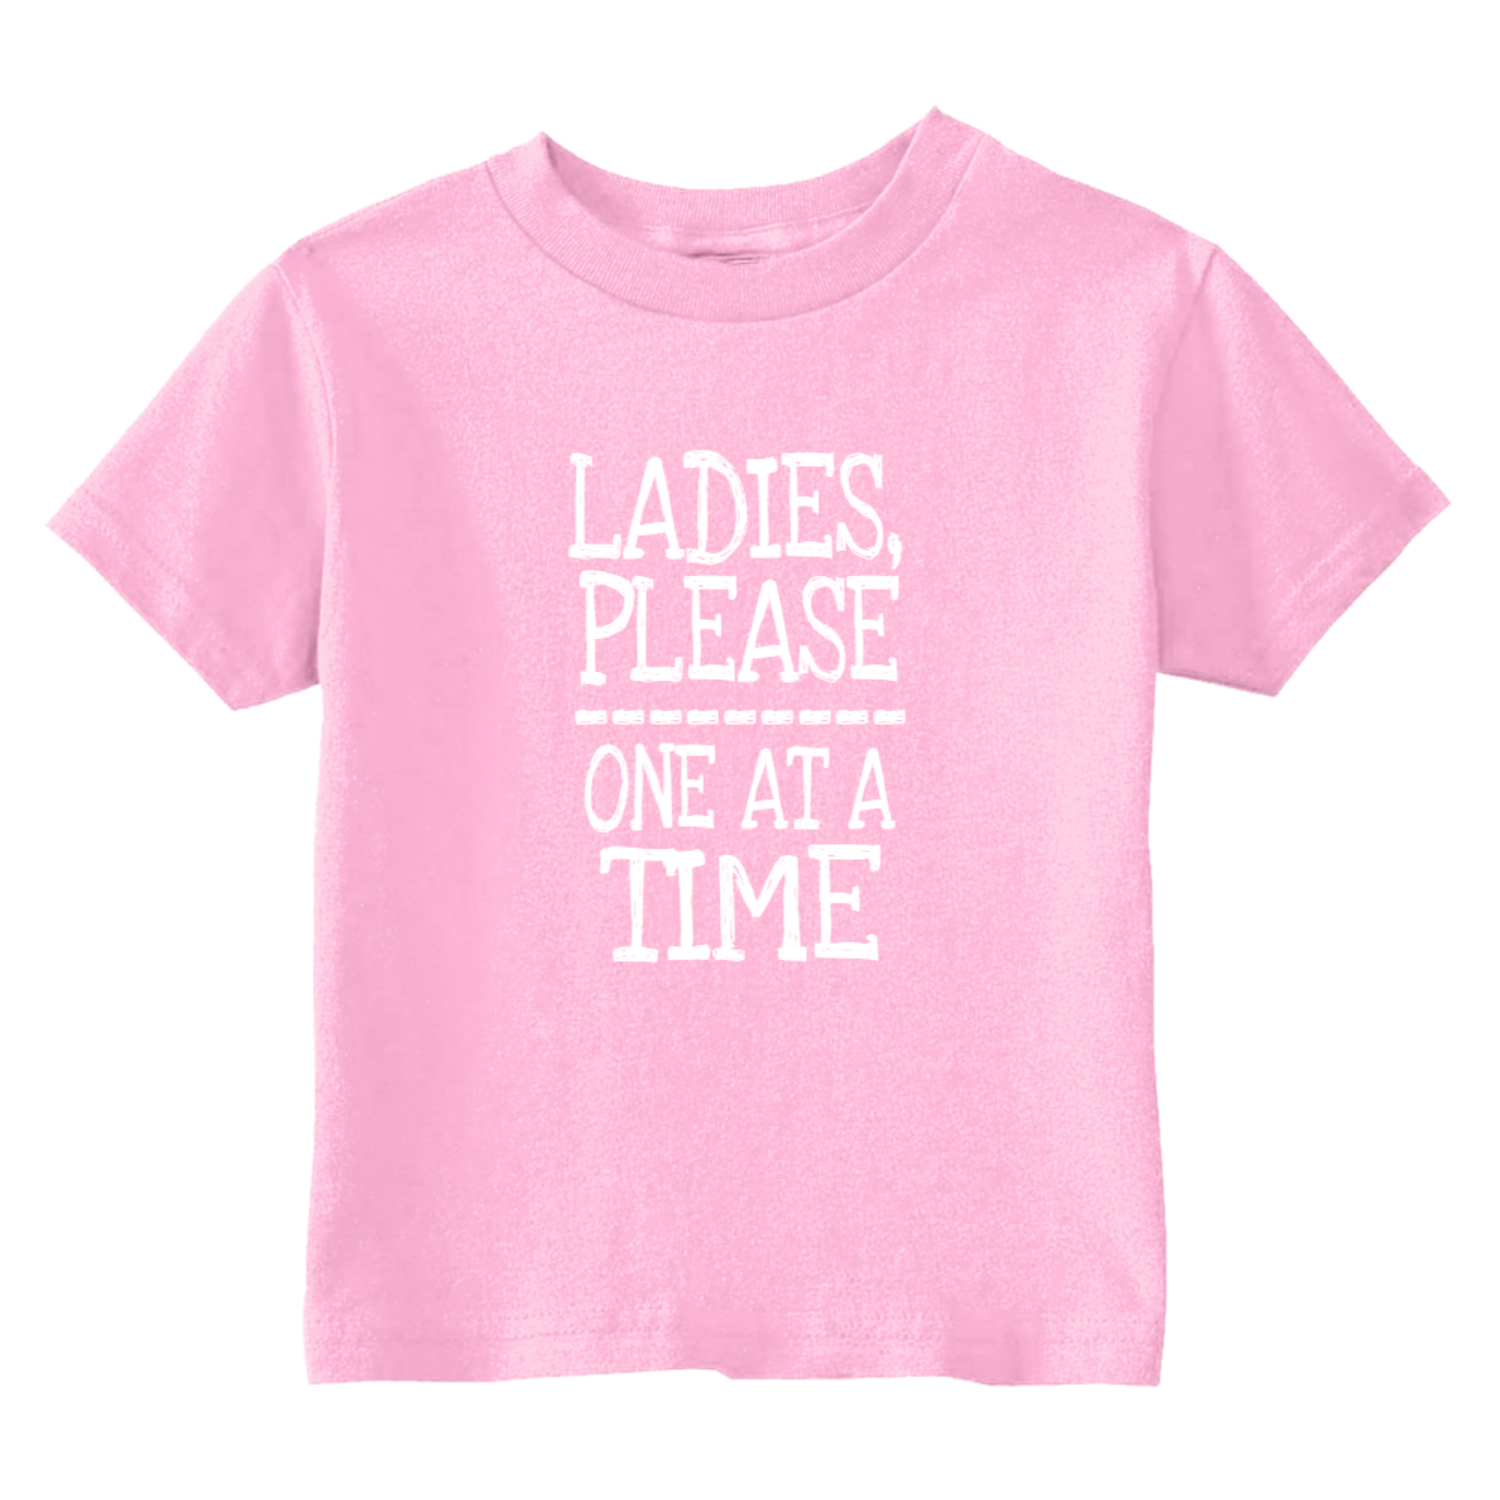 Ladies Please One At A Time Toddler T-Shirt Light Pink